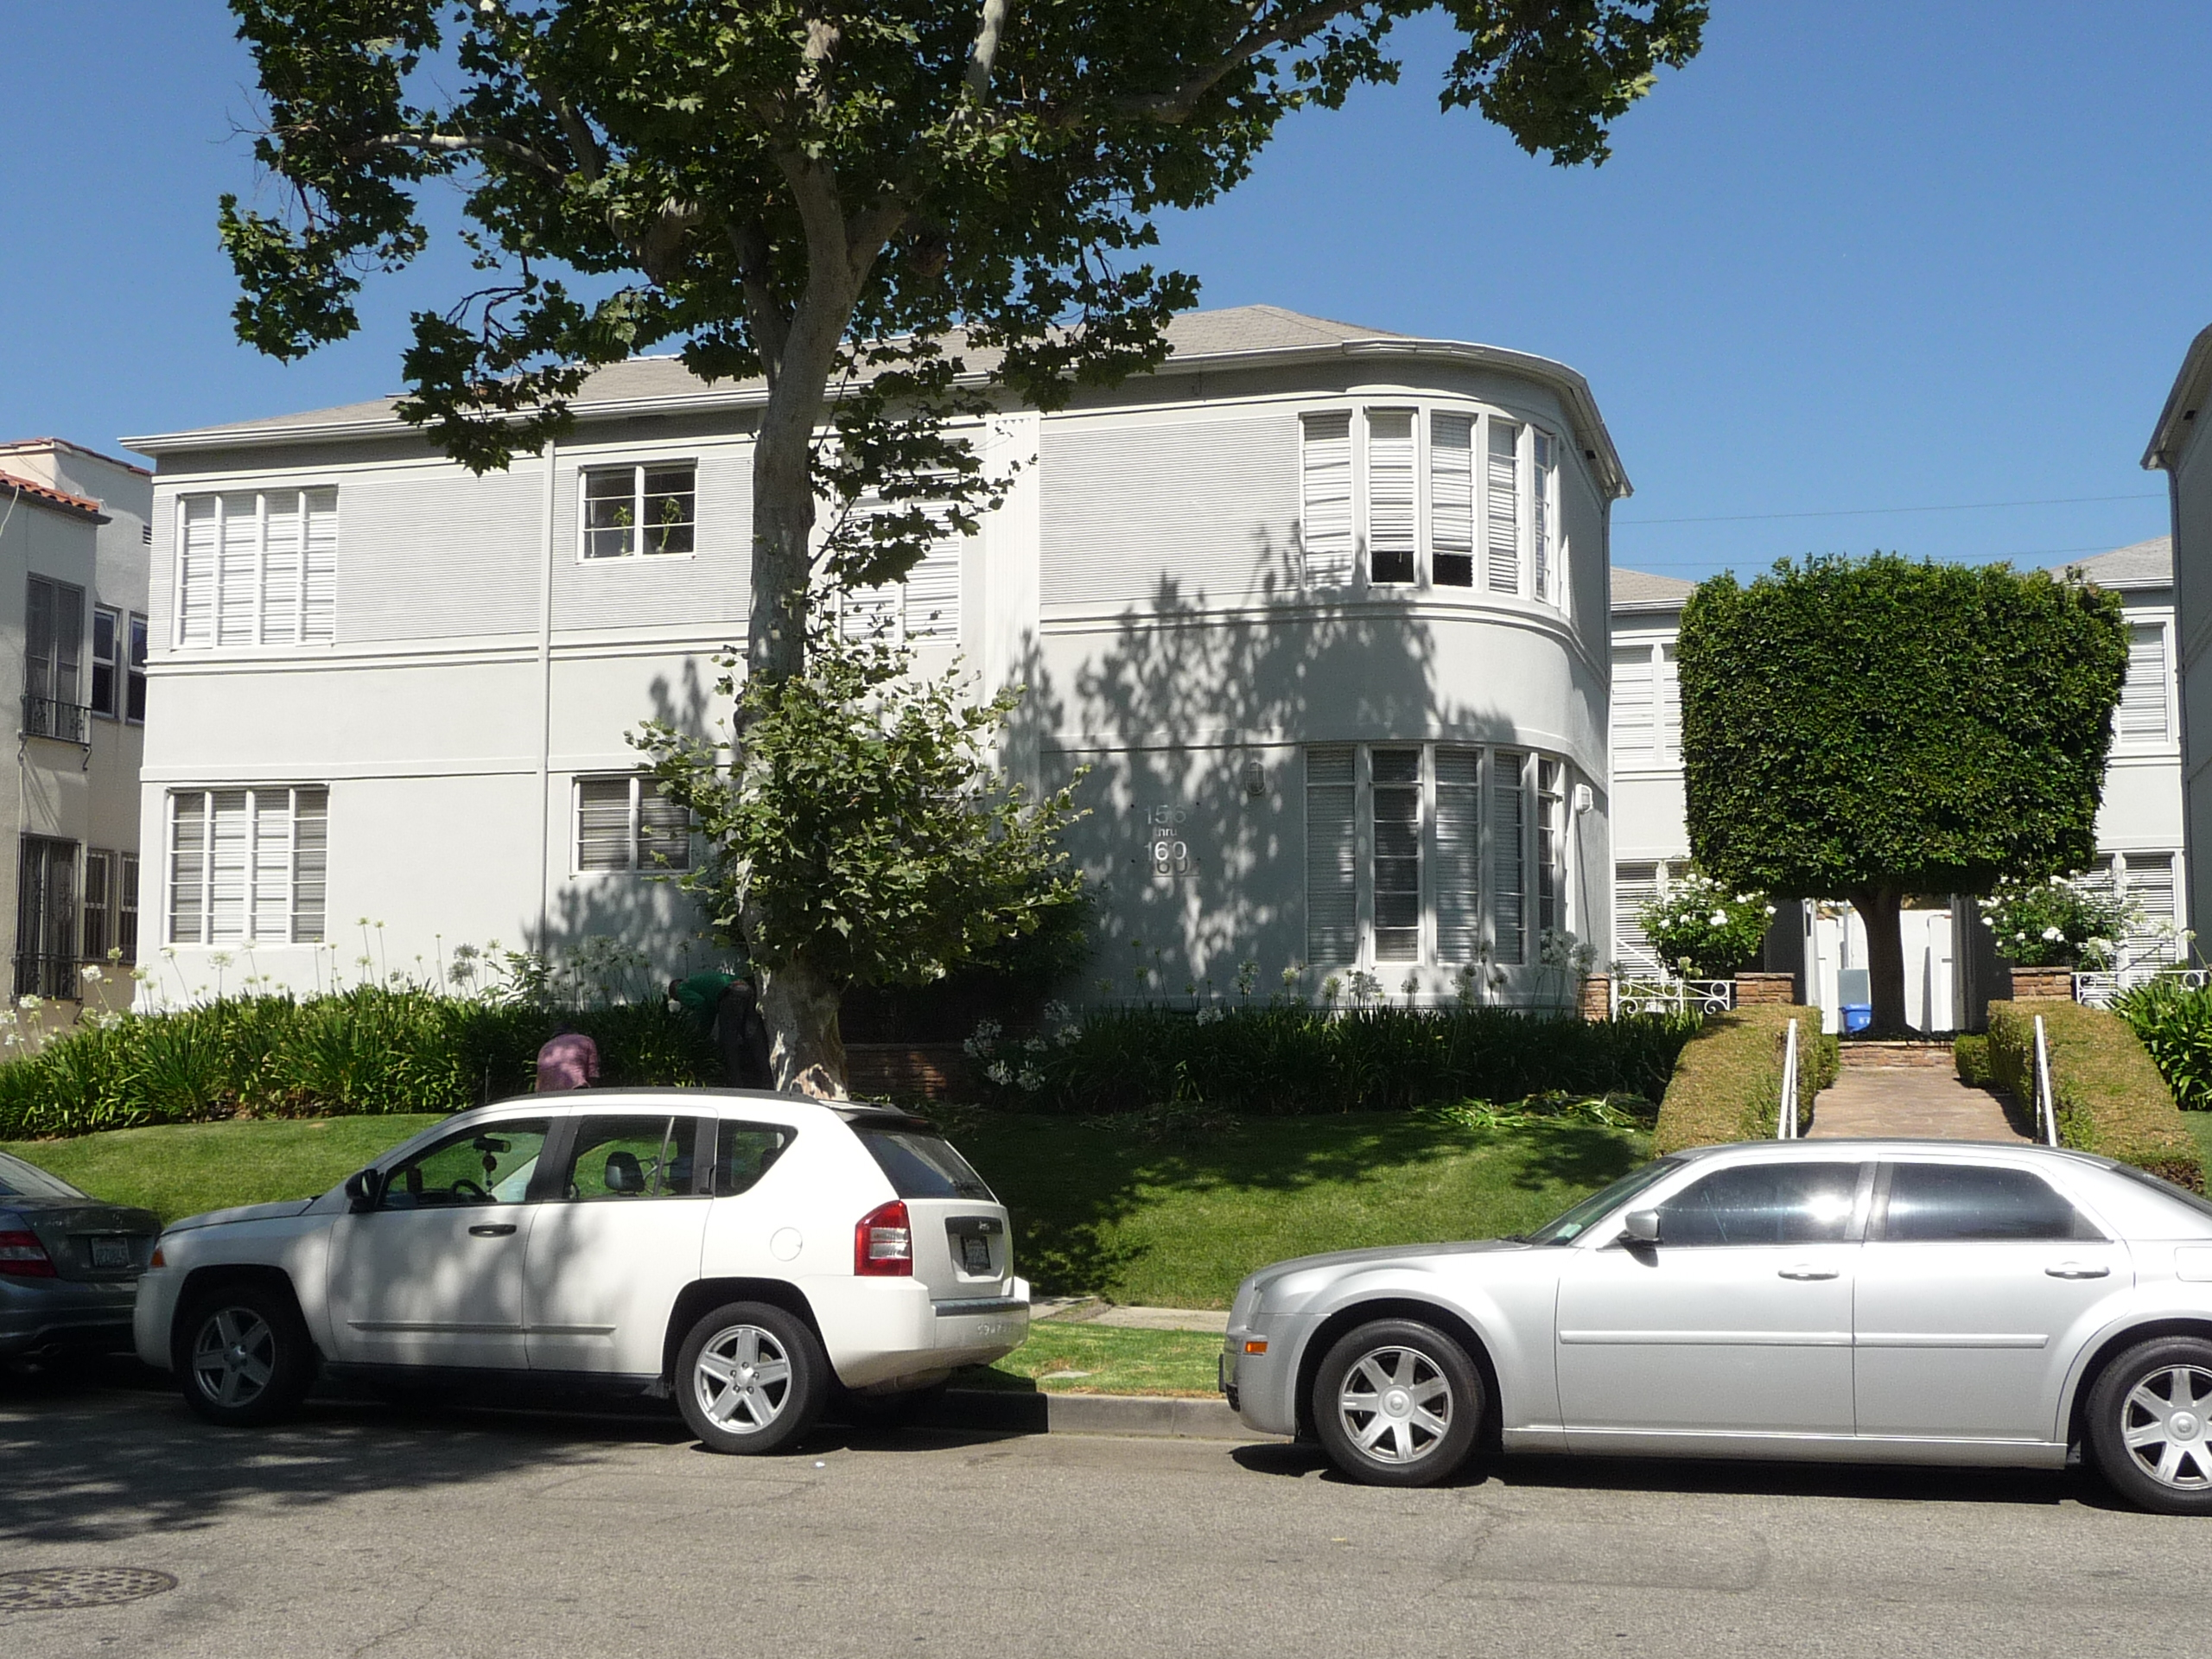 160 N SYCAMORE AVE - PHOTO